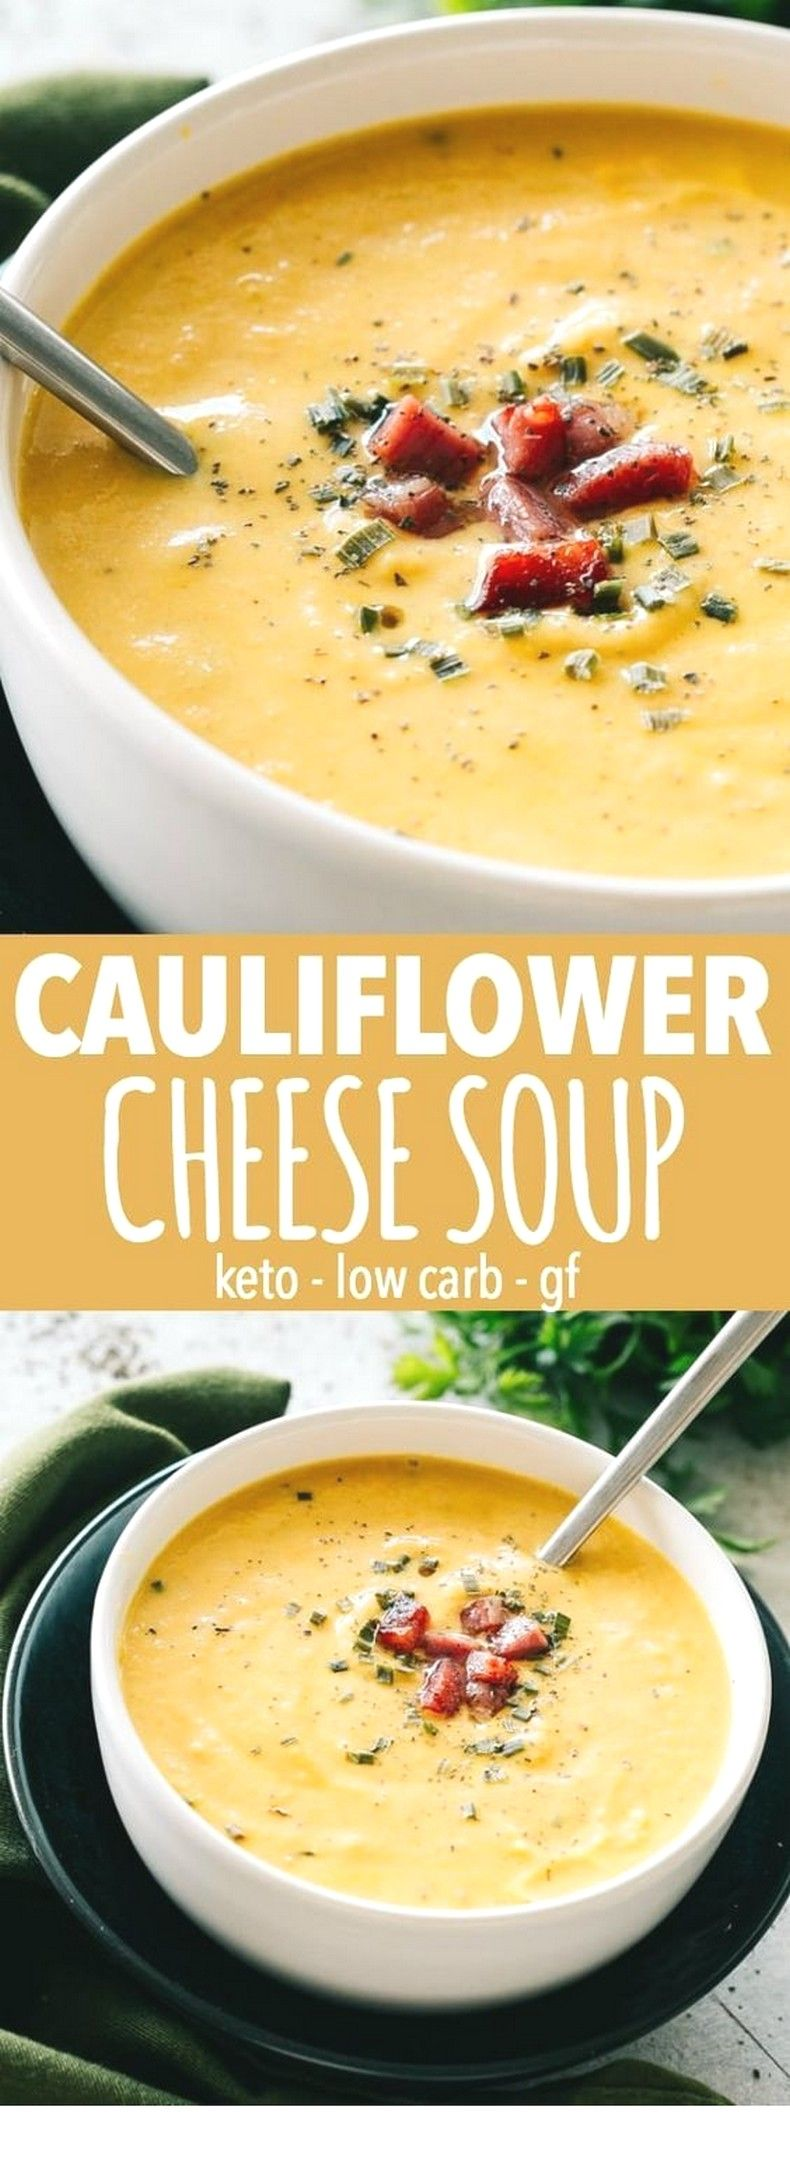 Cauliflower Cheese Soup | Easy Soup Recipes Ideas images